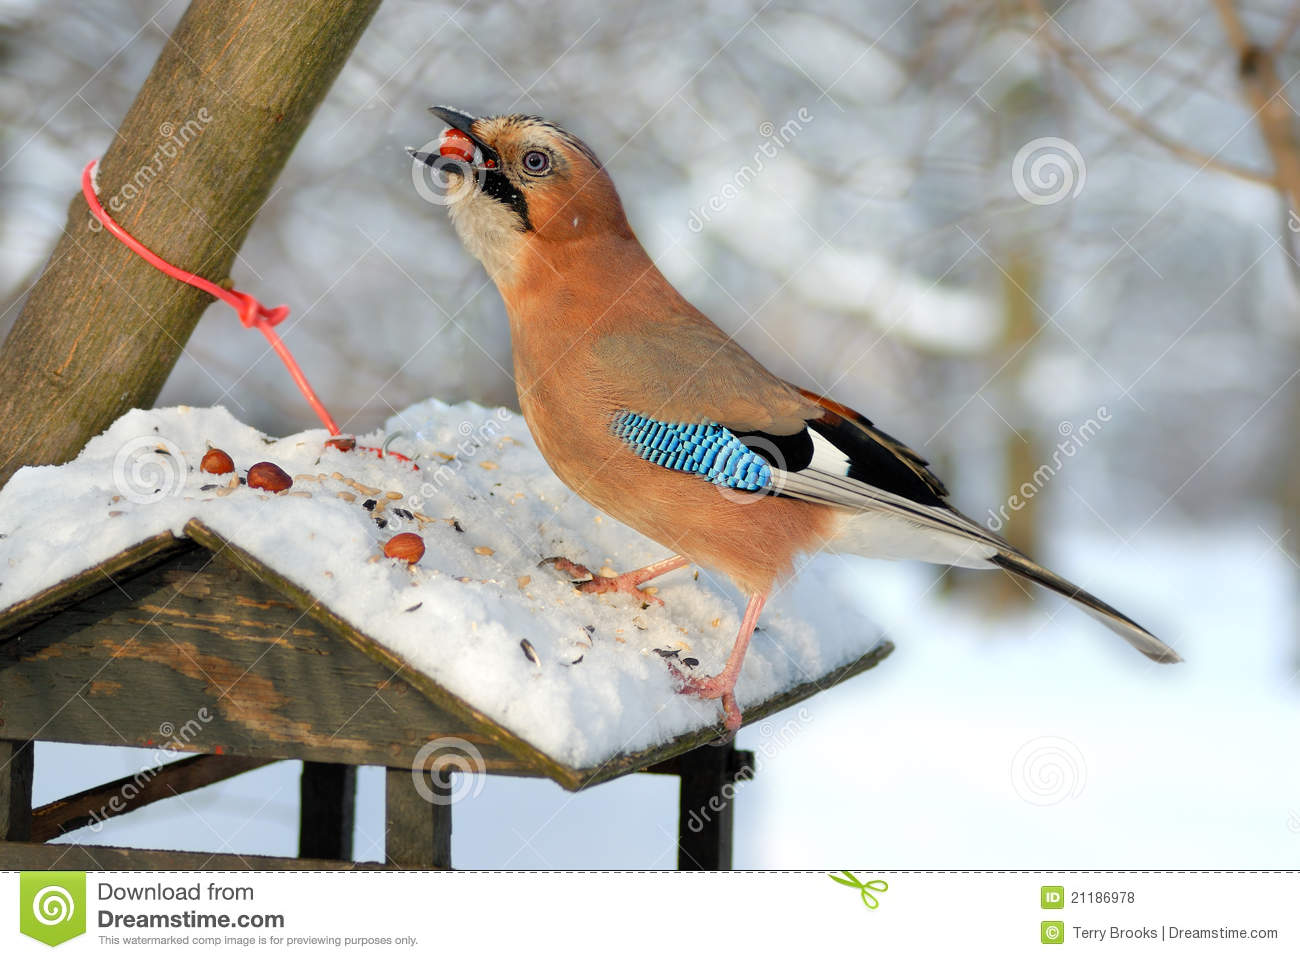 Jay stealing nuts from a bird feeder.